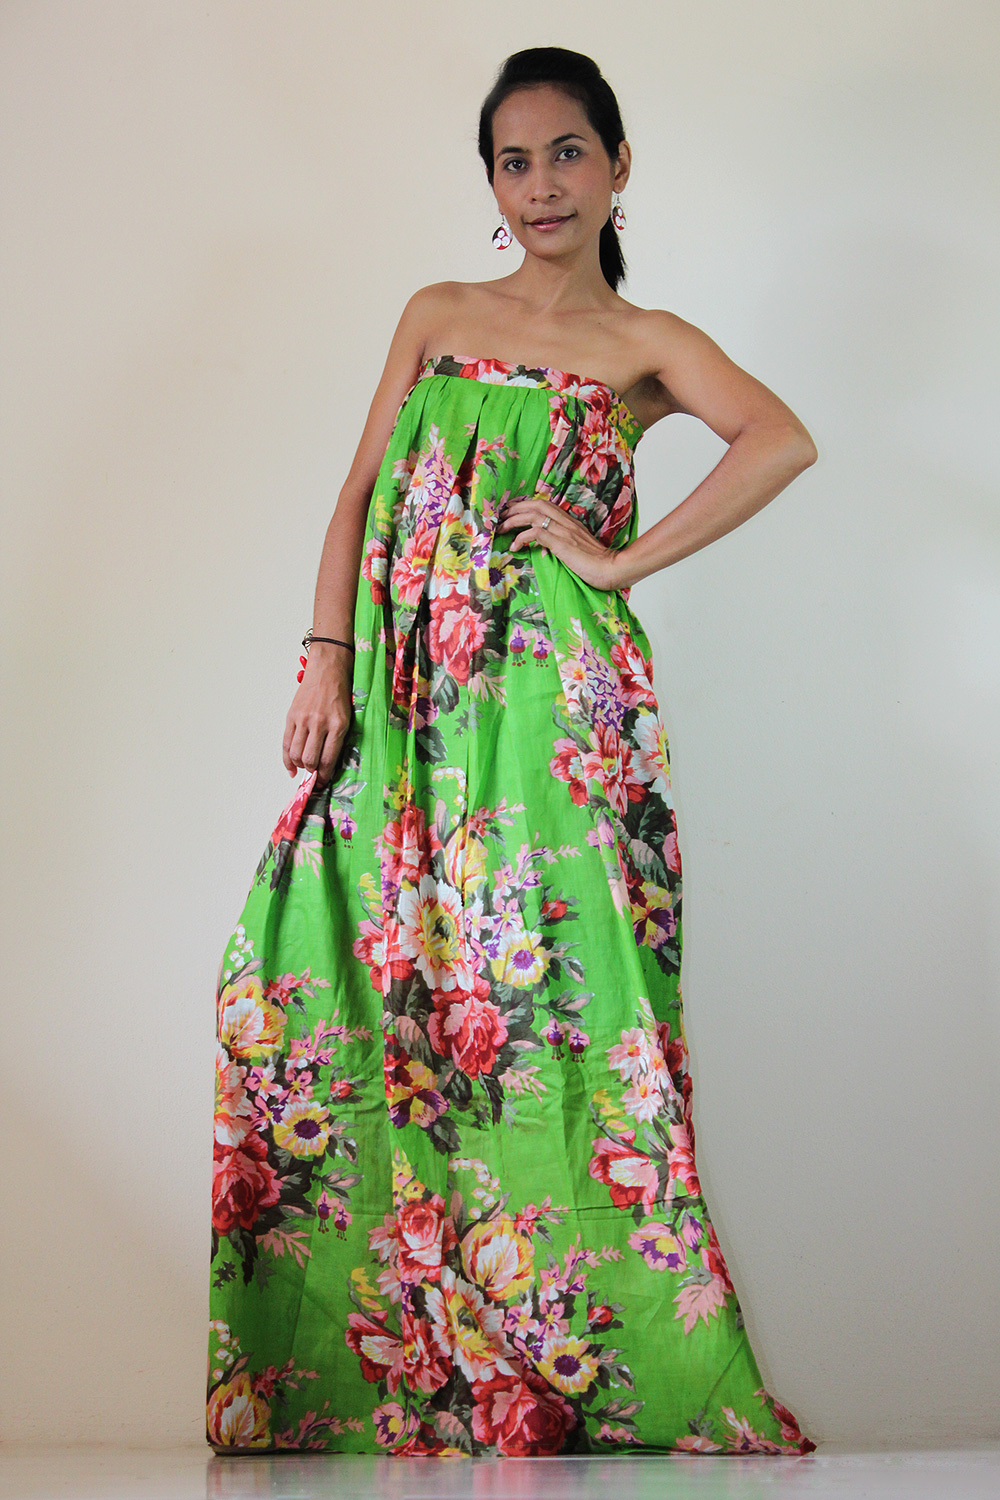 floral maxi dress for wedding green maxi dress floral bridesmaid stylish 4111